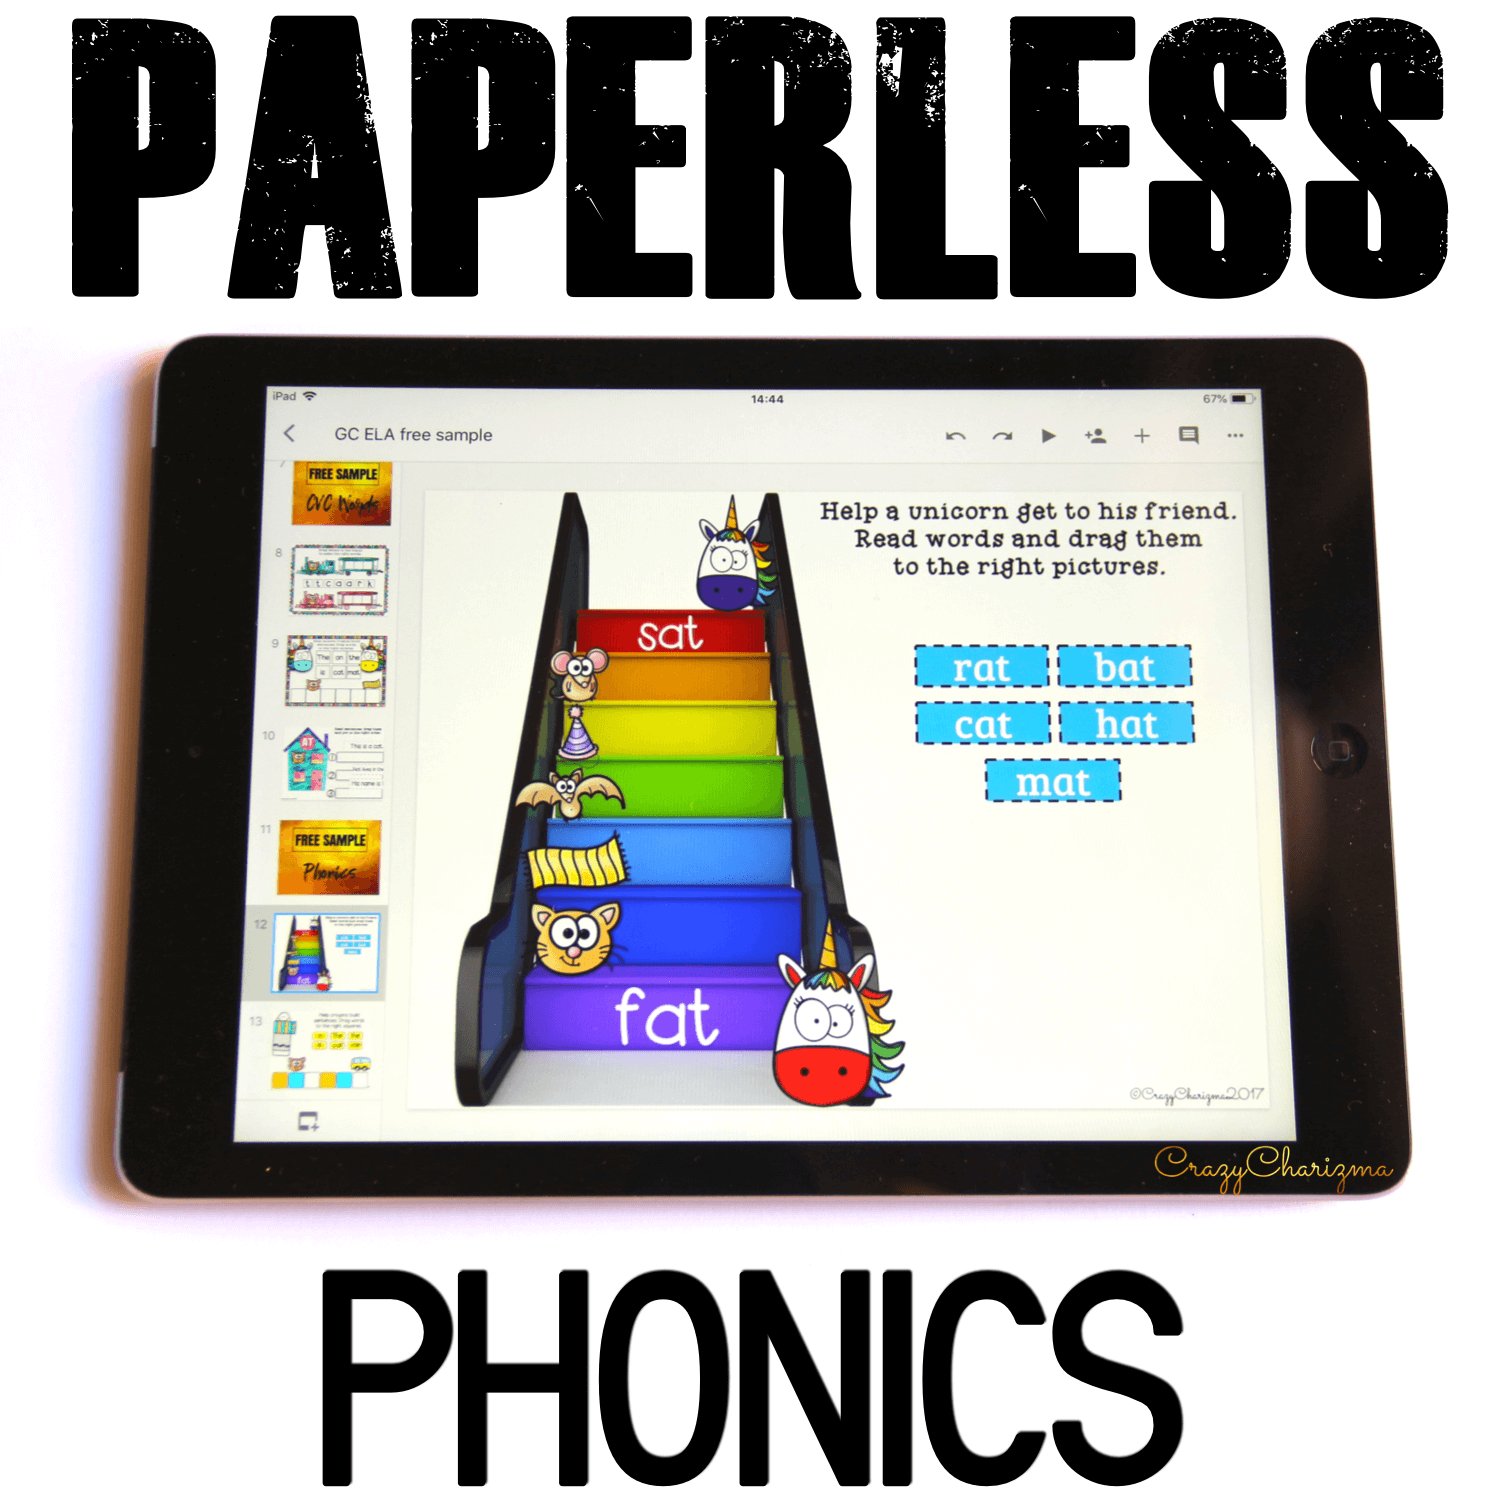 Google Classroom Activities for Kindergarten. Phonics Games. Need hands-on activities to practice CVC words? Grab these activities for Google Classroom. They are perfect for literacy centers, whole group, small group, homework, guided reading groups and 1:1 work. Get kids engaged with phonics. #CrazyCharizma #GoogleClassroom #GoogleClassroomKindergarten #HandsOnActivitiesForKids #PaperlessClassroomElementary #PhonicsGames